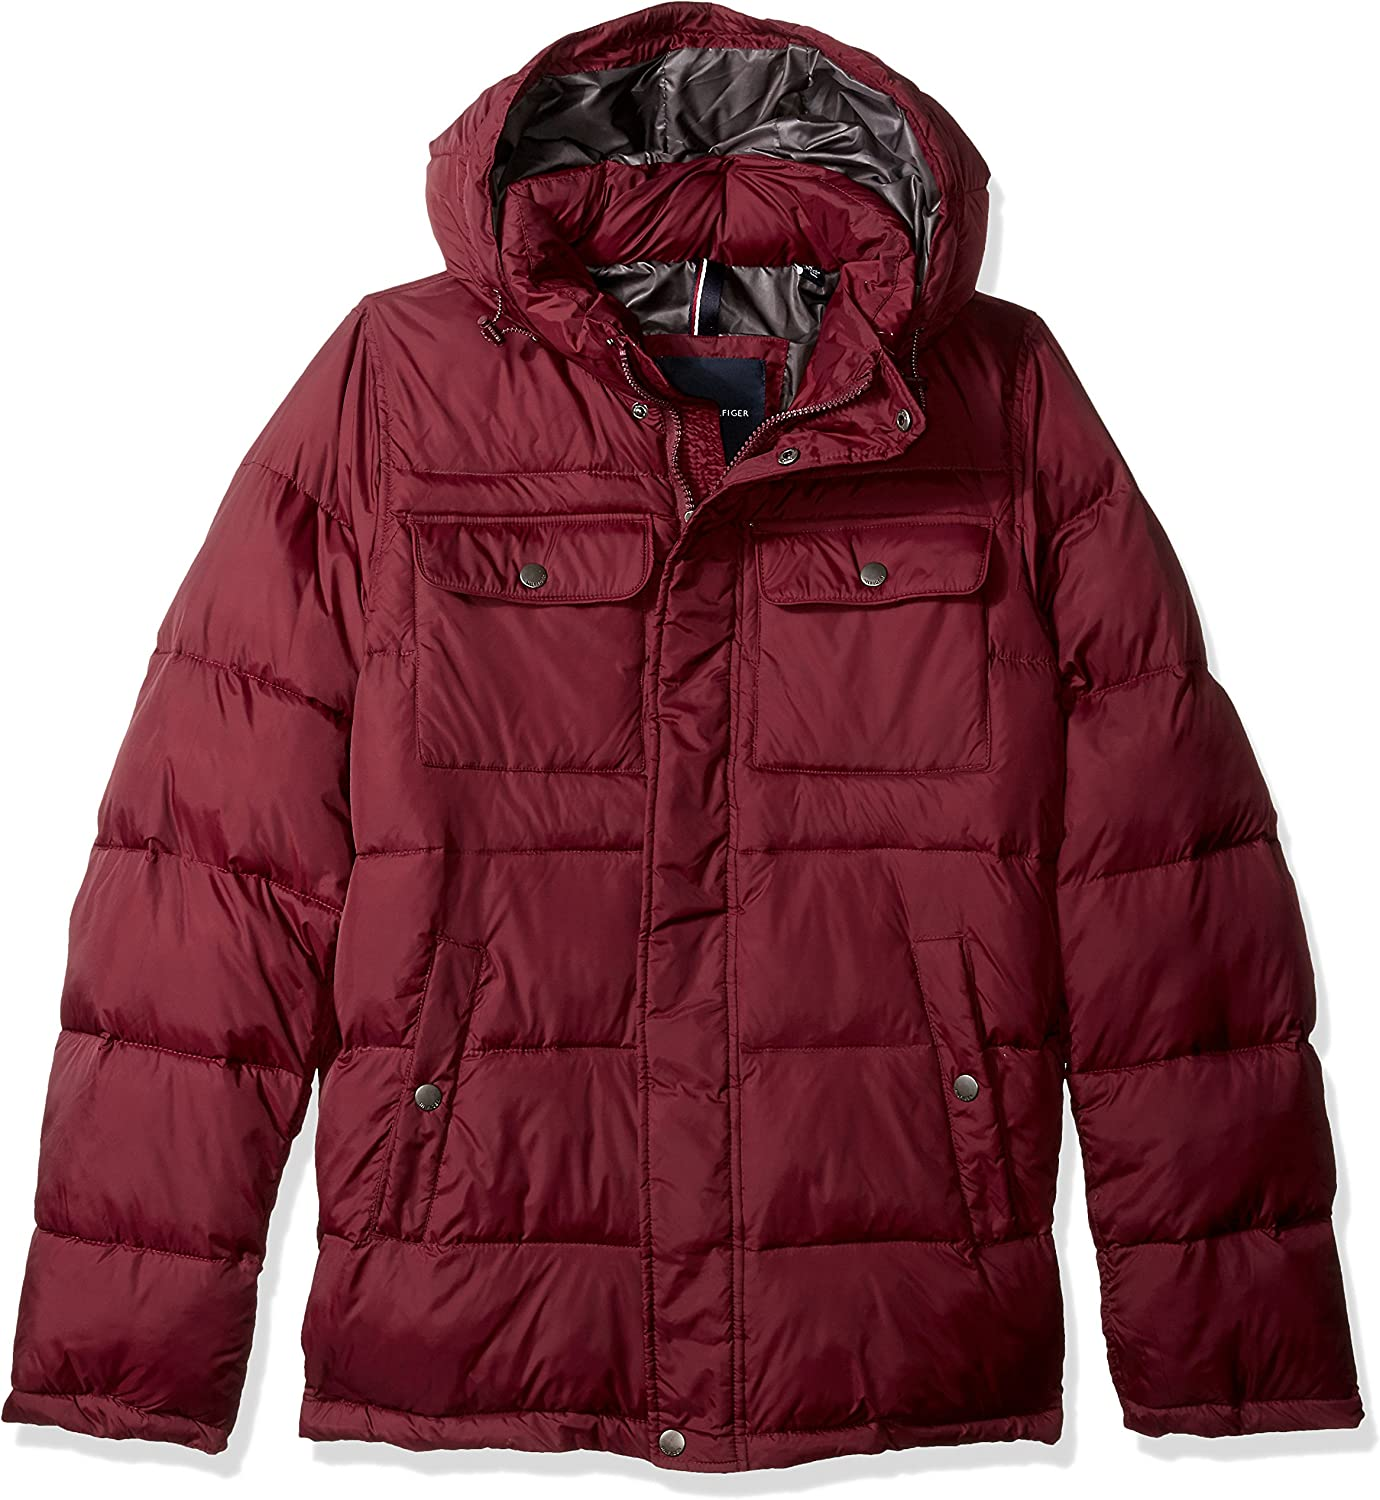 Tommy Hilfiger Mens Nylon Two Pocket Hooded Puffer Jacket Regular, Big, and Tall